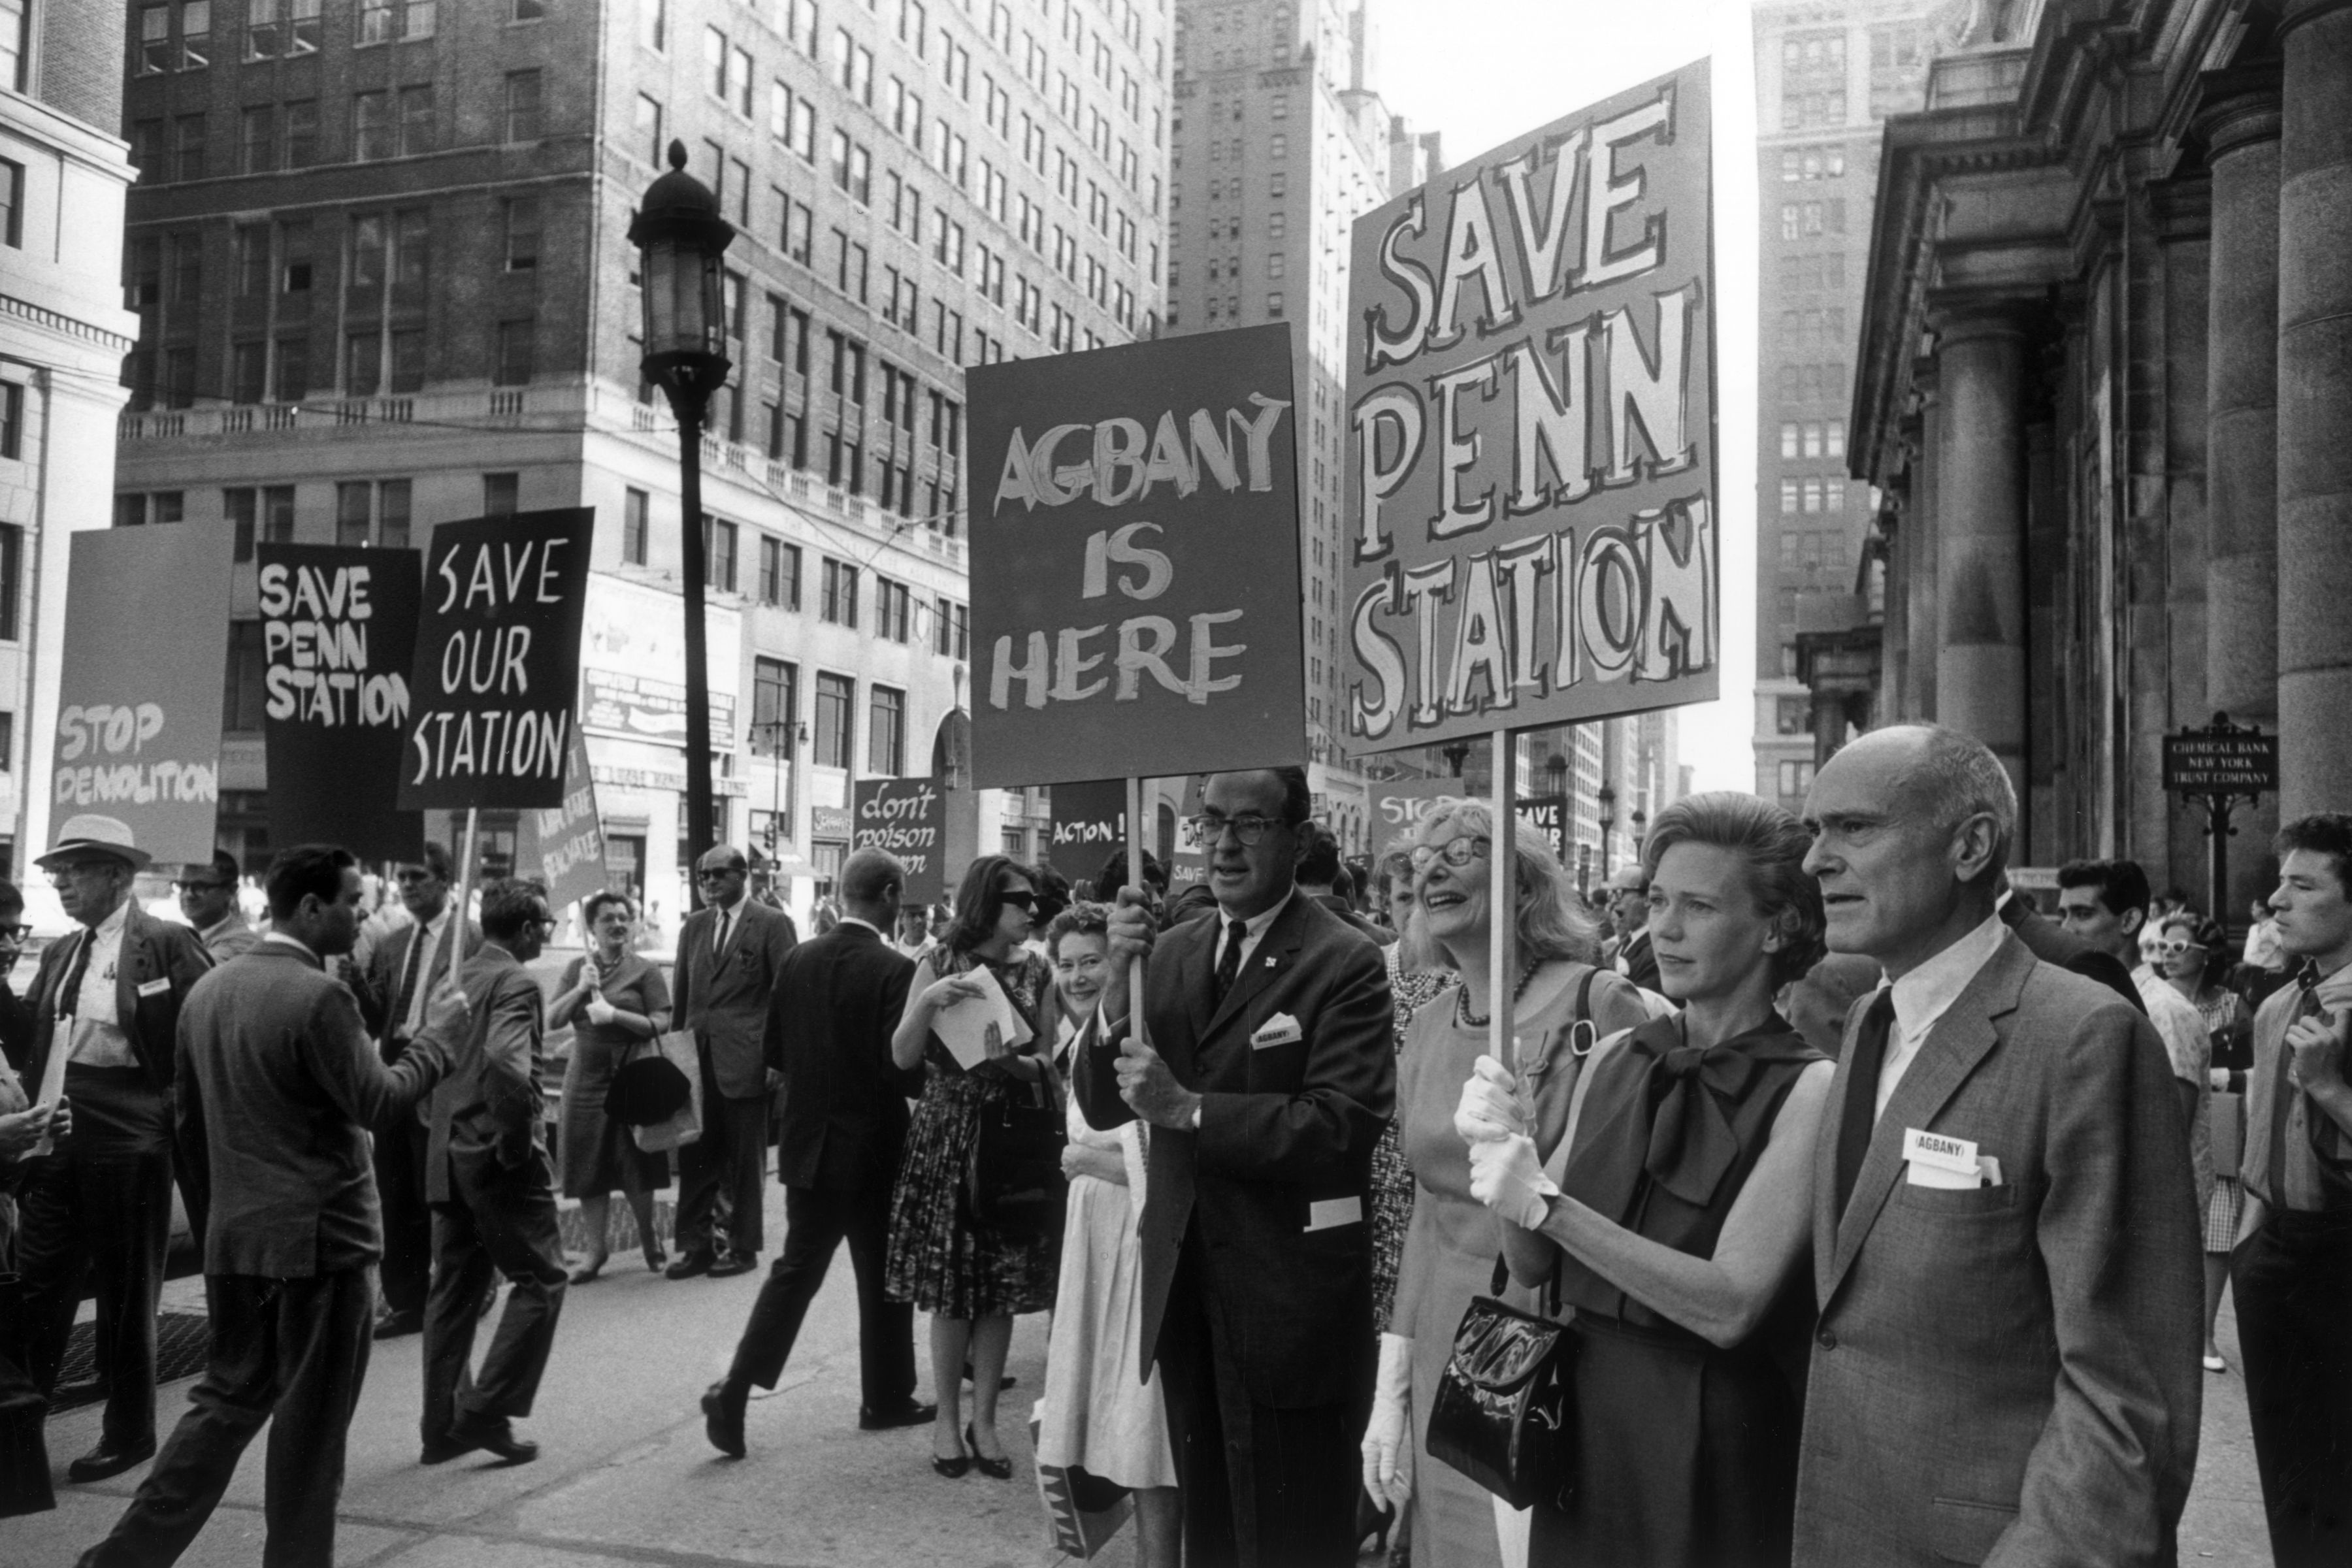 Jane Jacobs and others picket to save Penn Station from demolition, 1963